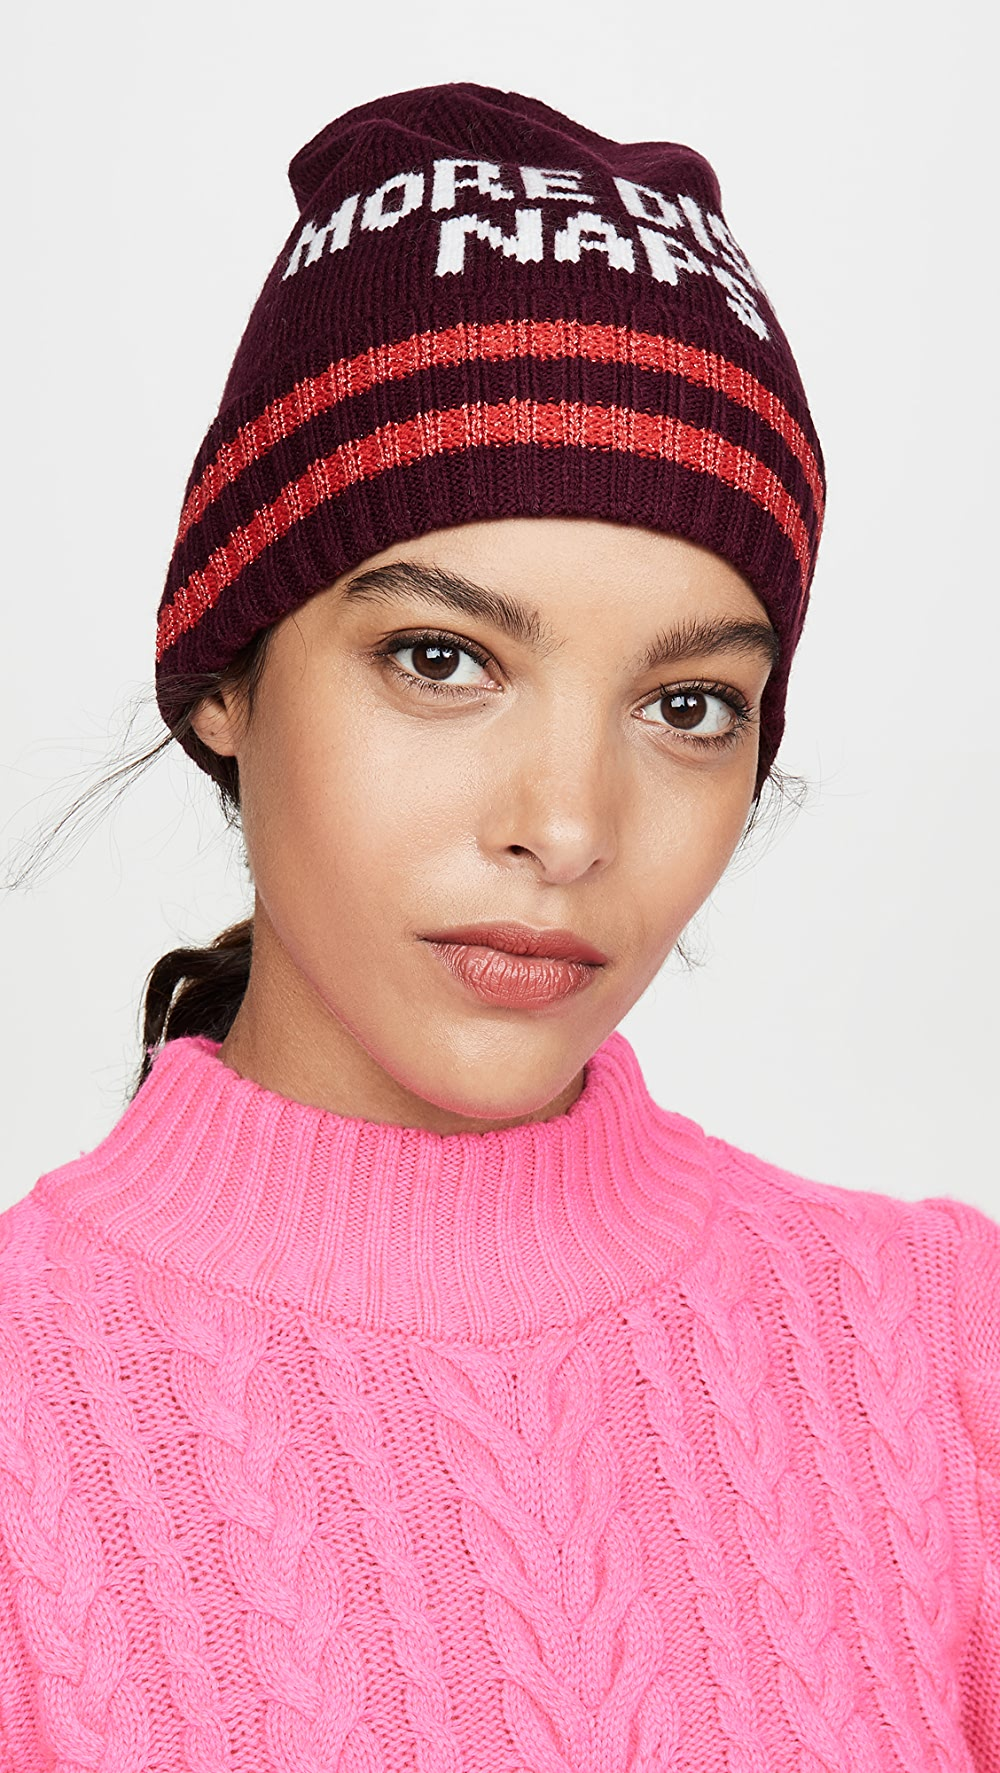 Apprehensive Kate Spade New York - More Disco Naps Beanie Hat Agreeable Sweetness